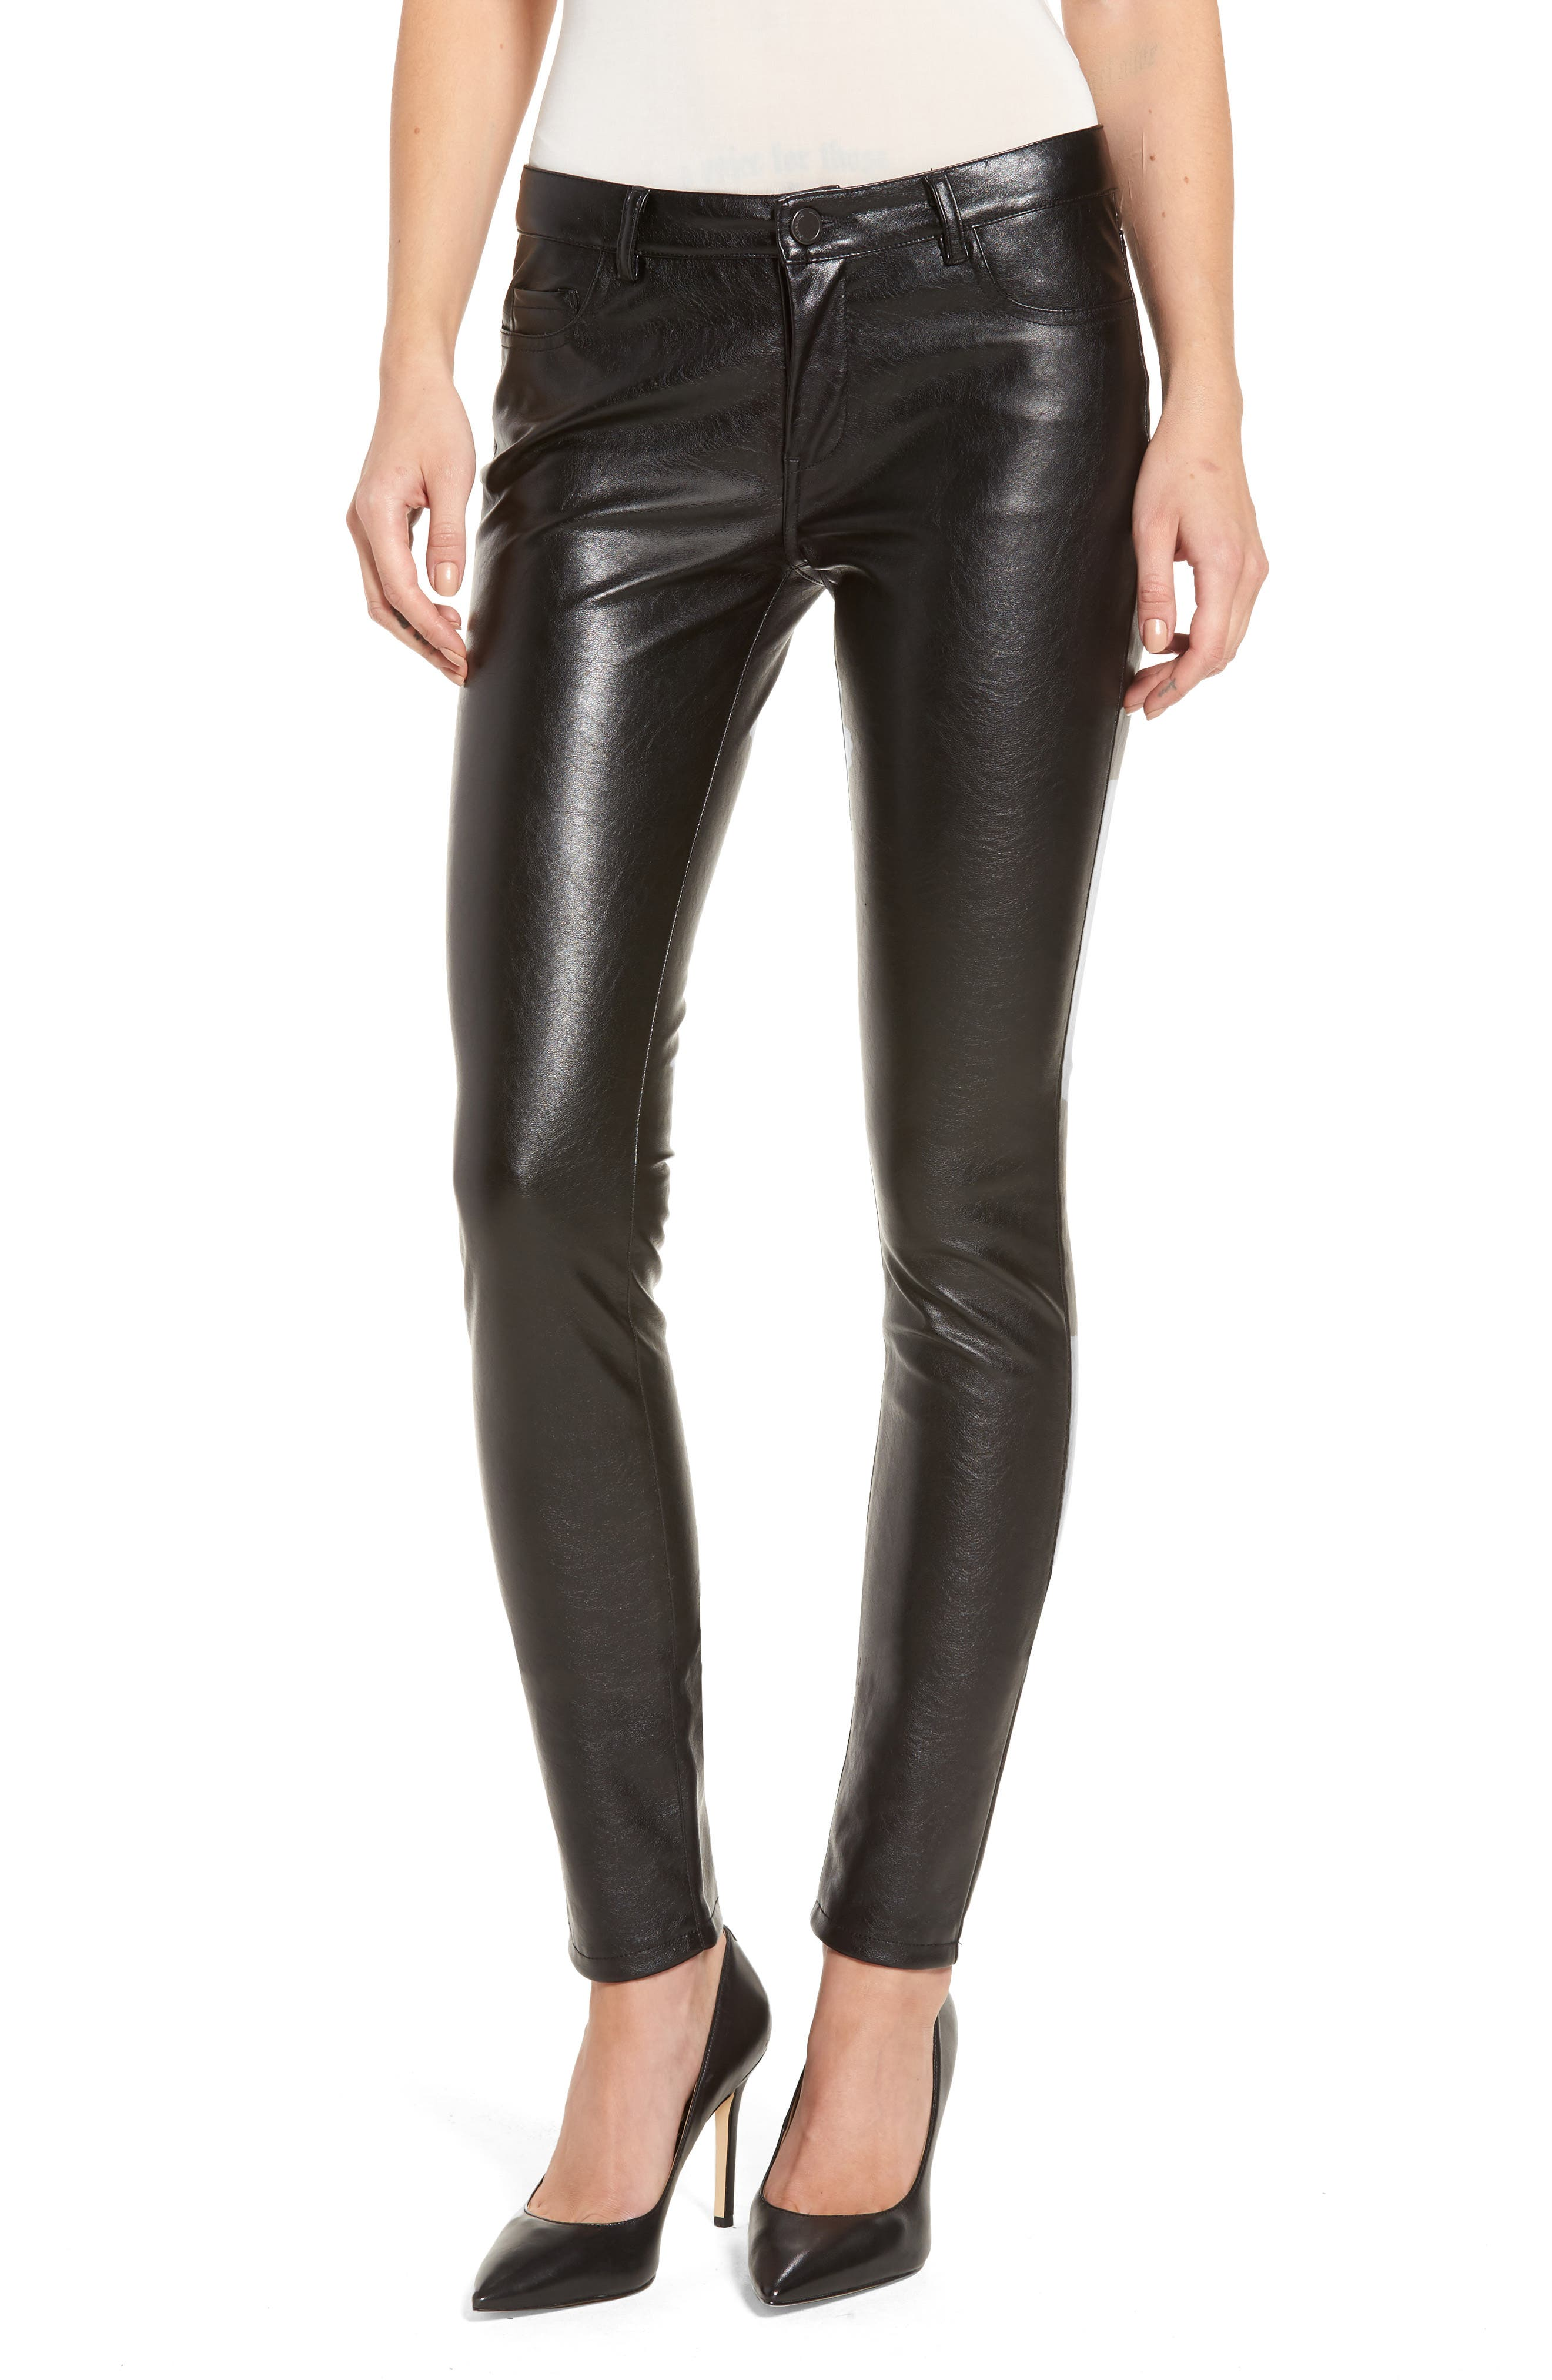 BLANKNYC Skinny Classique Faux Leather Jeans